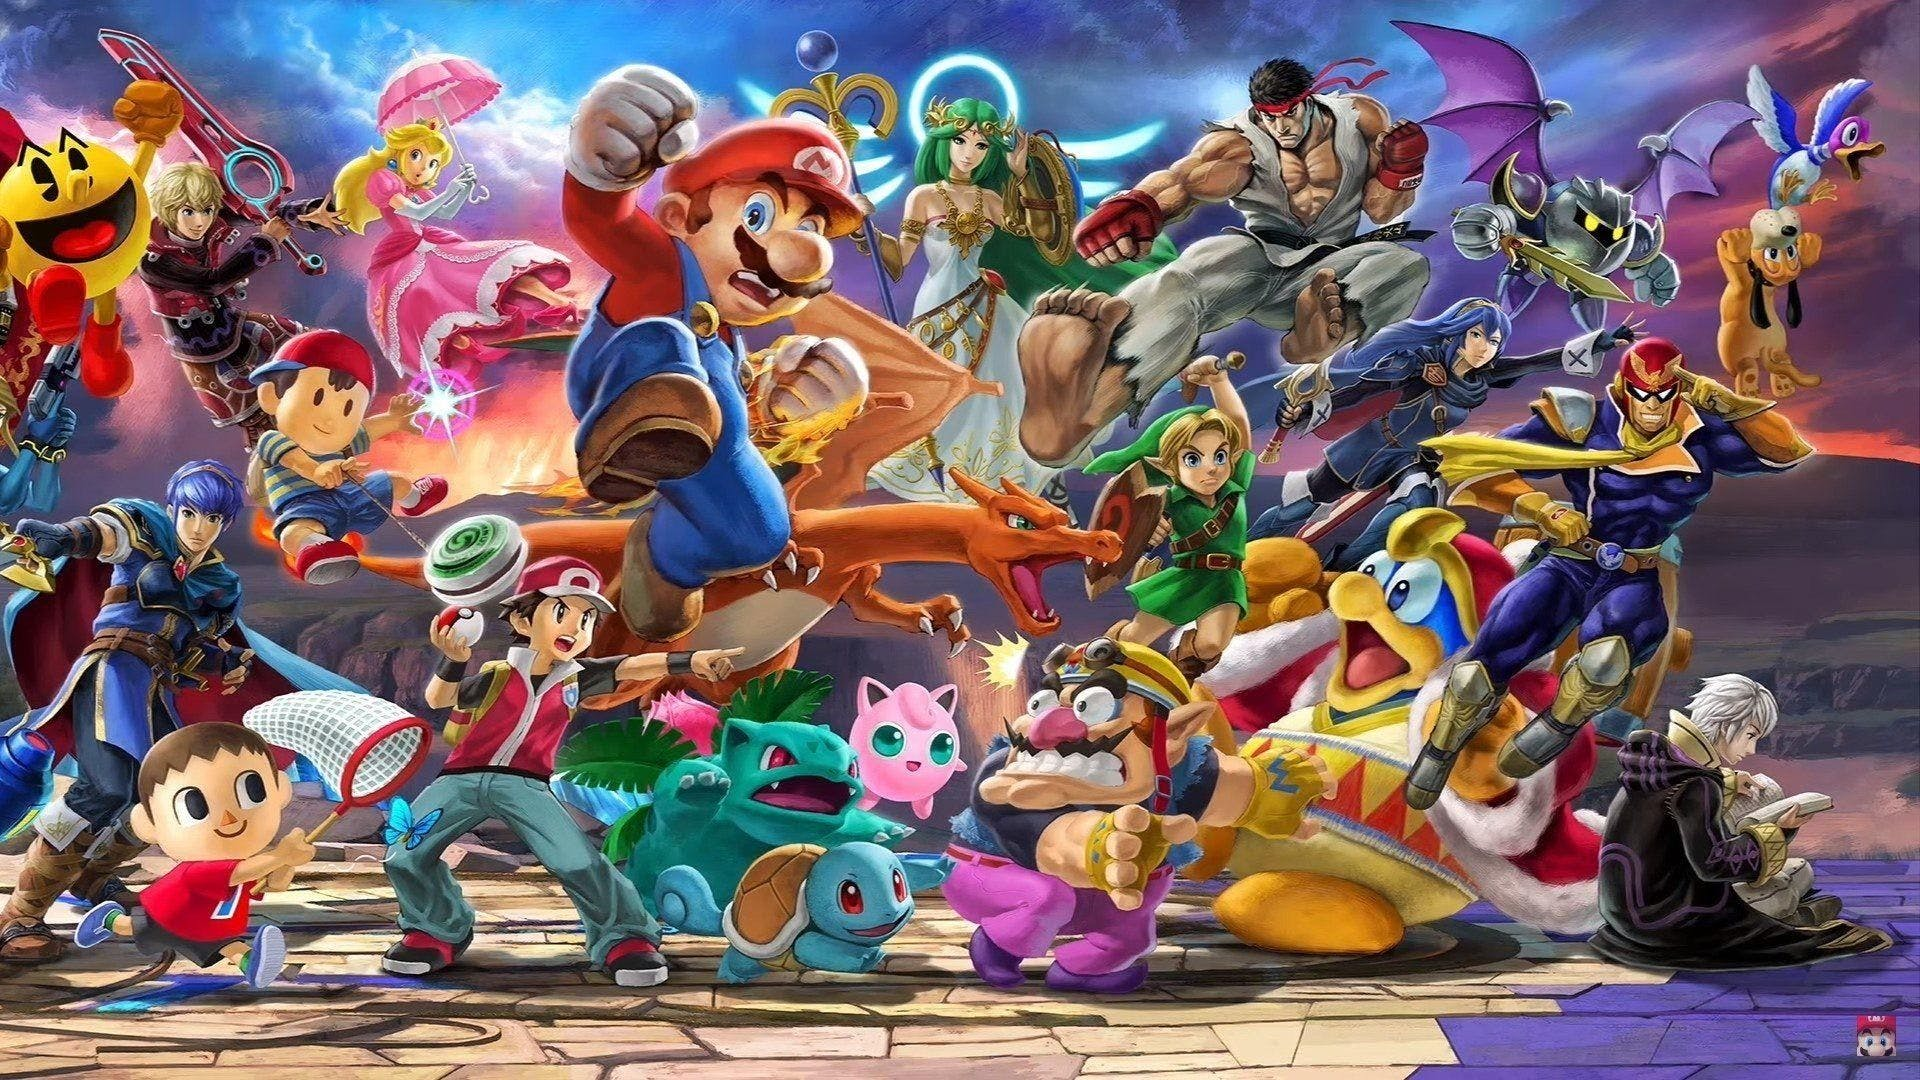 Image of characters from the game Super Smash Bros.